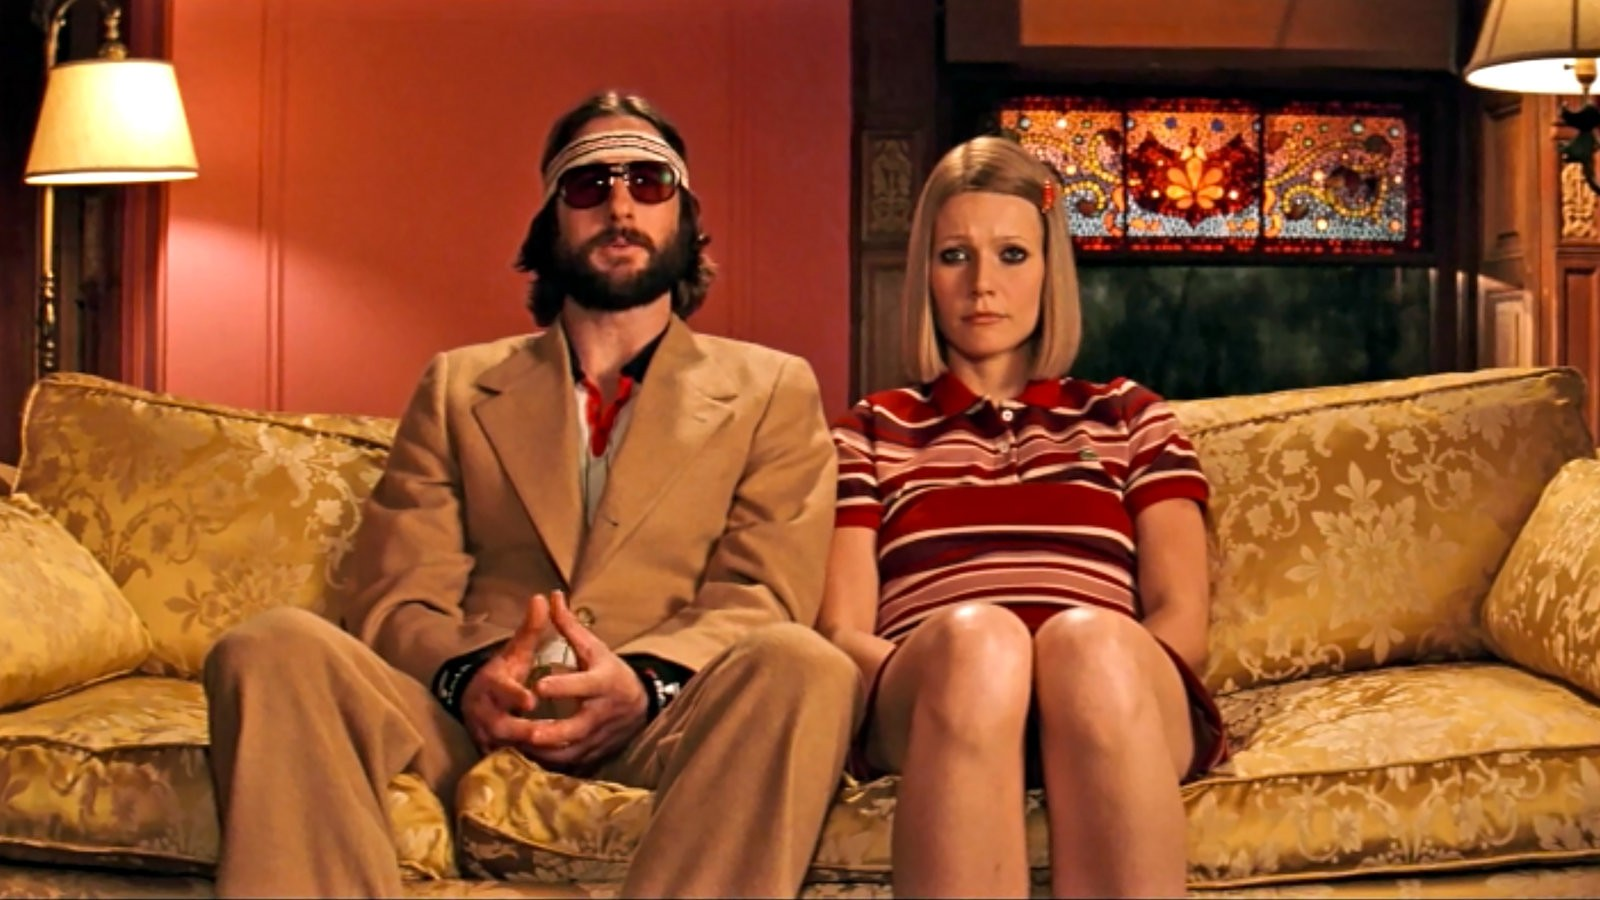 the-royal-tenenbaums-watching-videosixteenbyninejumbo1600-v2